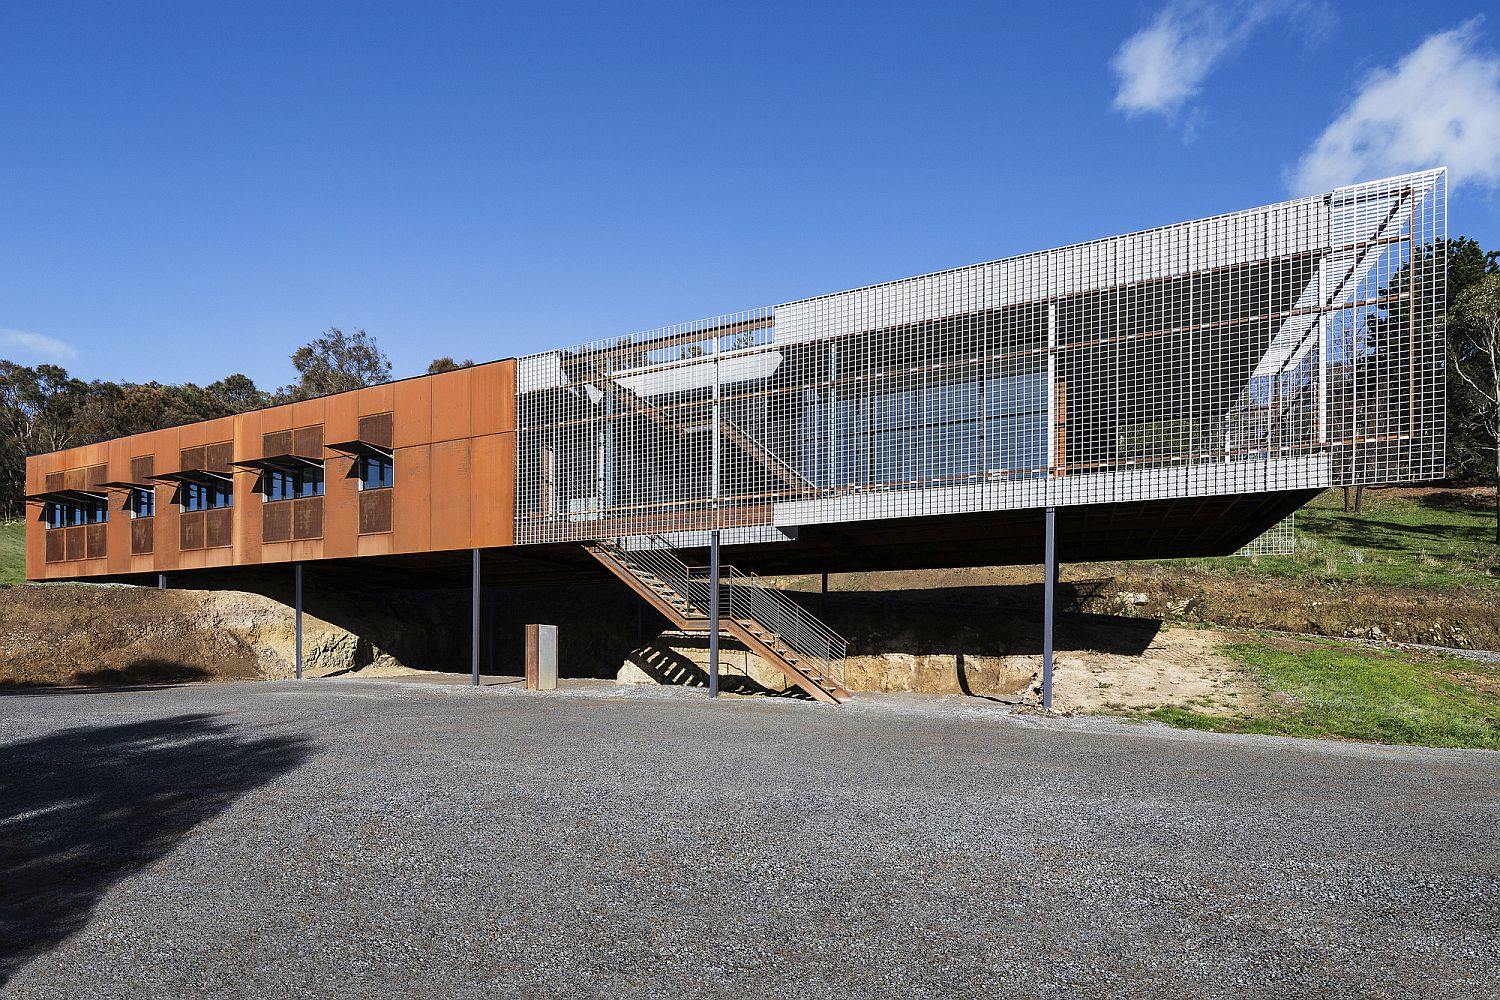 Metallic-exterior-of-the-Aussie-home-is-perfect-for-the-rough-weather-outside